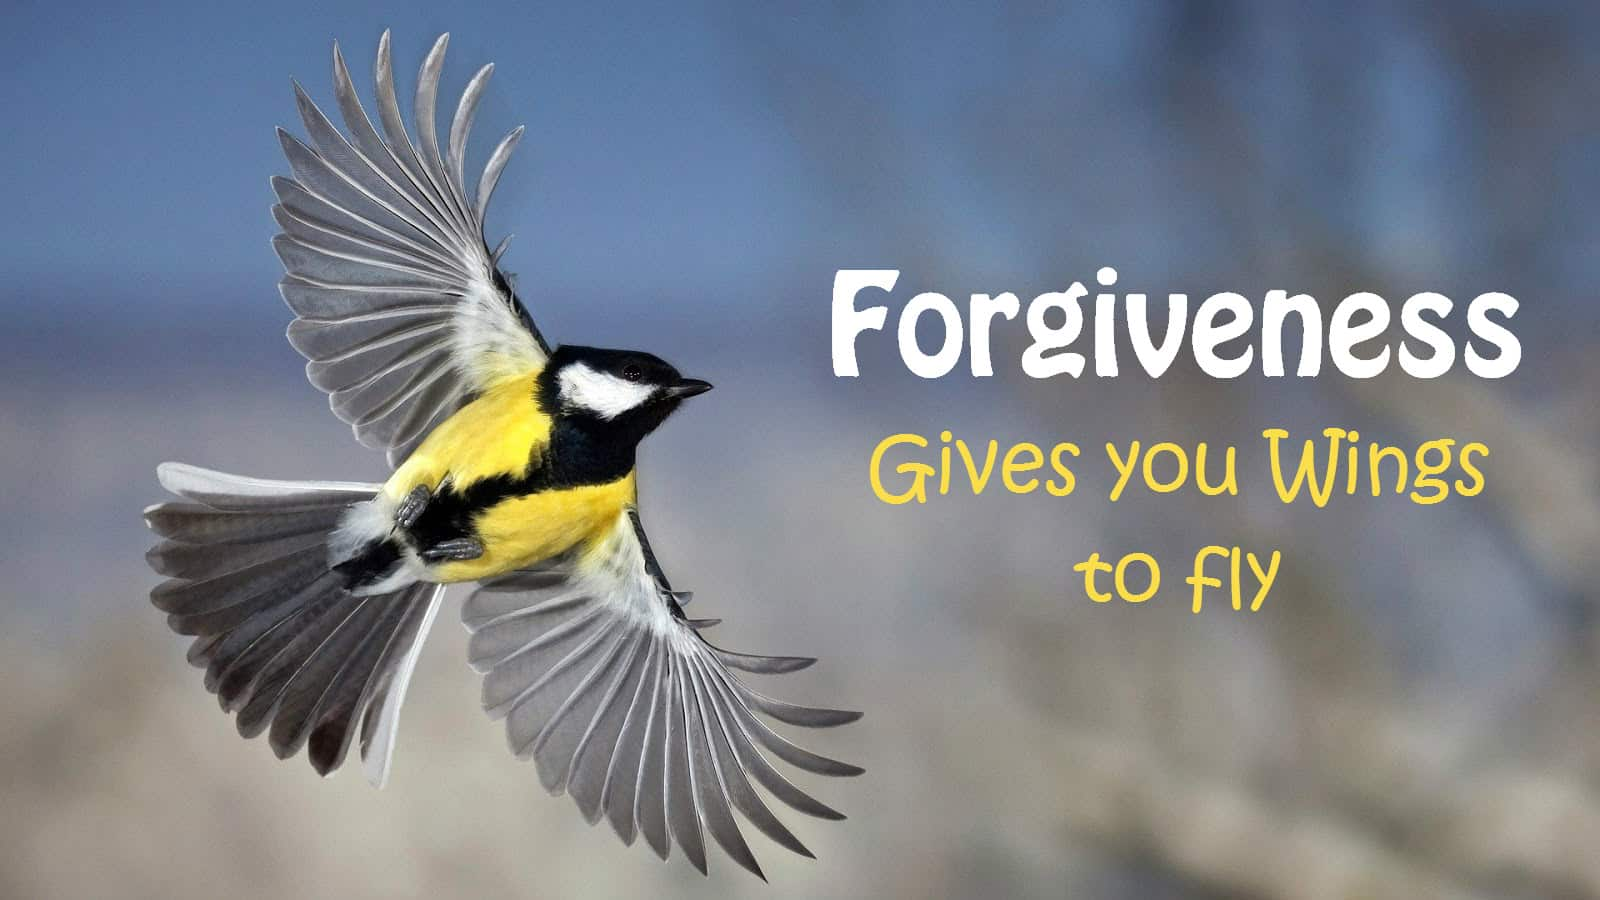 Forgiveness gives wings to fly.